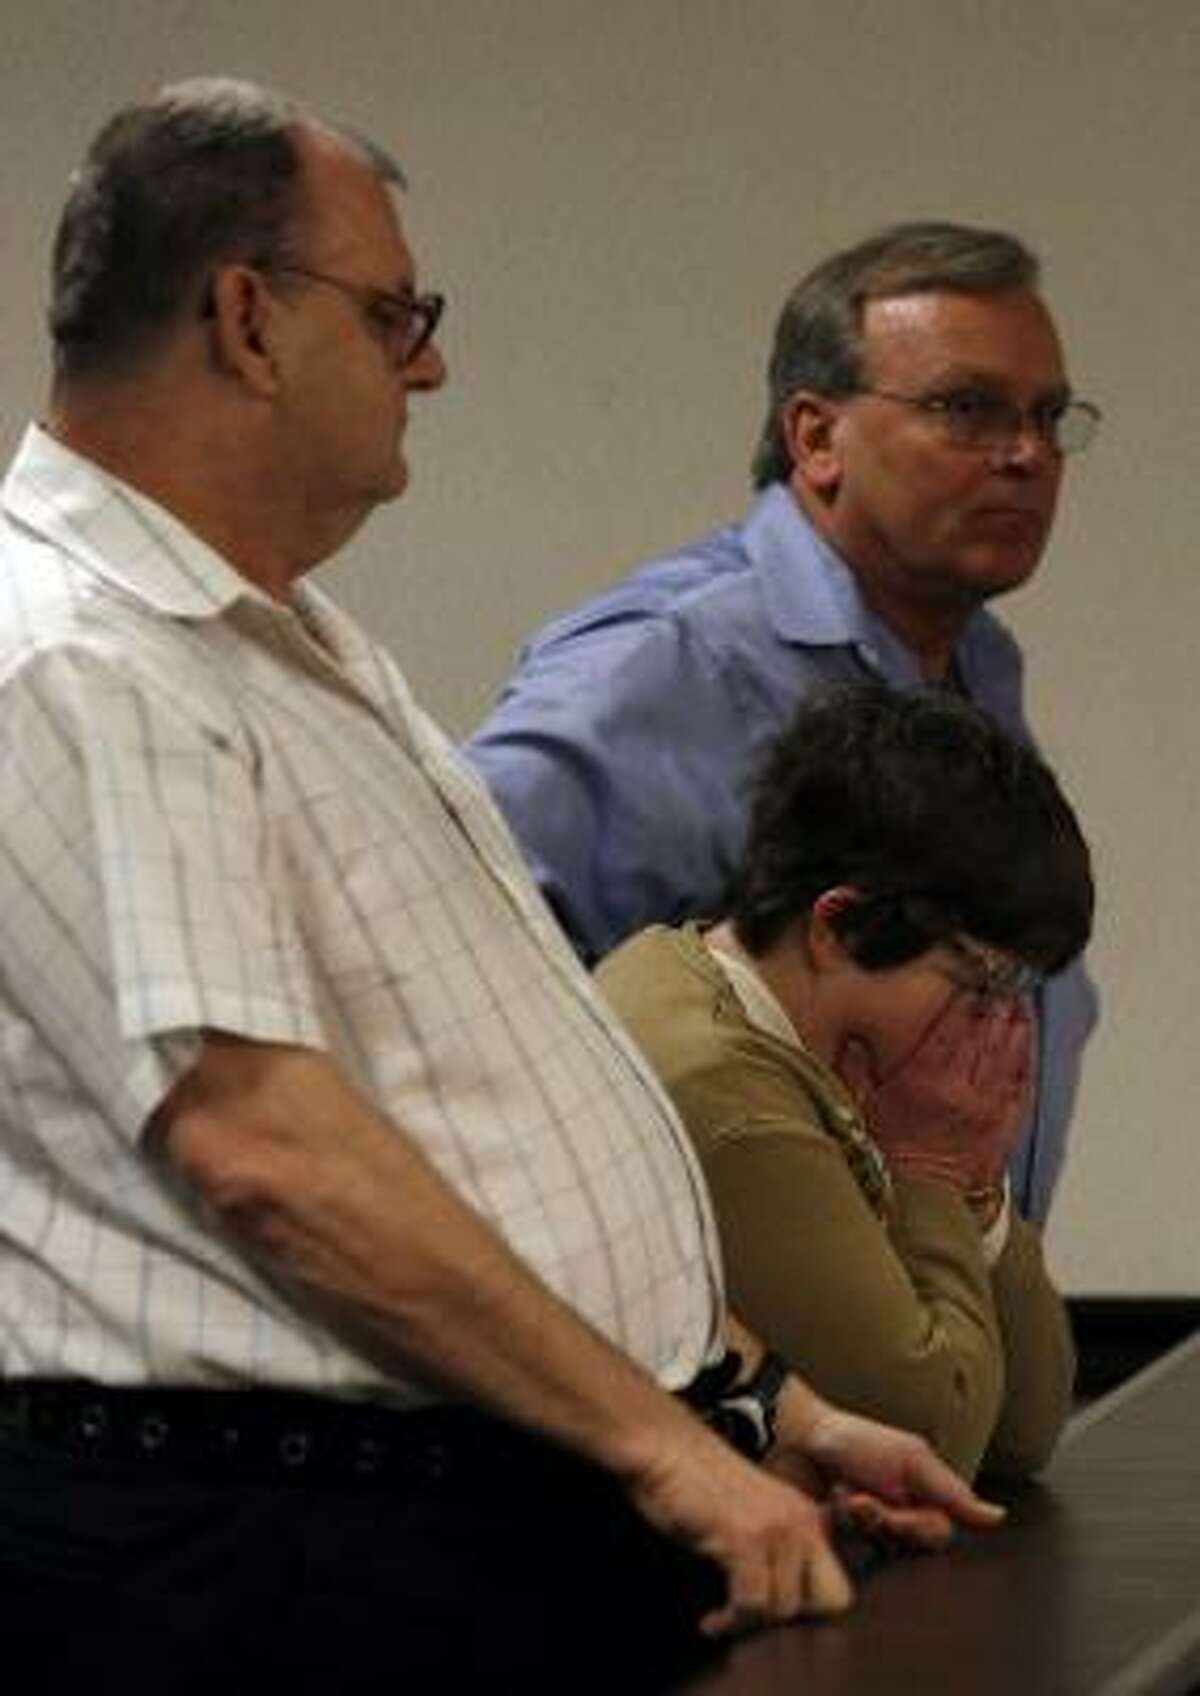 Family members of Kimberly Dawn Trenor react to her conviction Monday in Galveston.